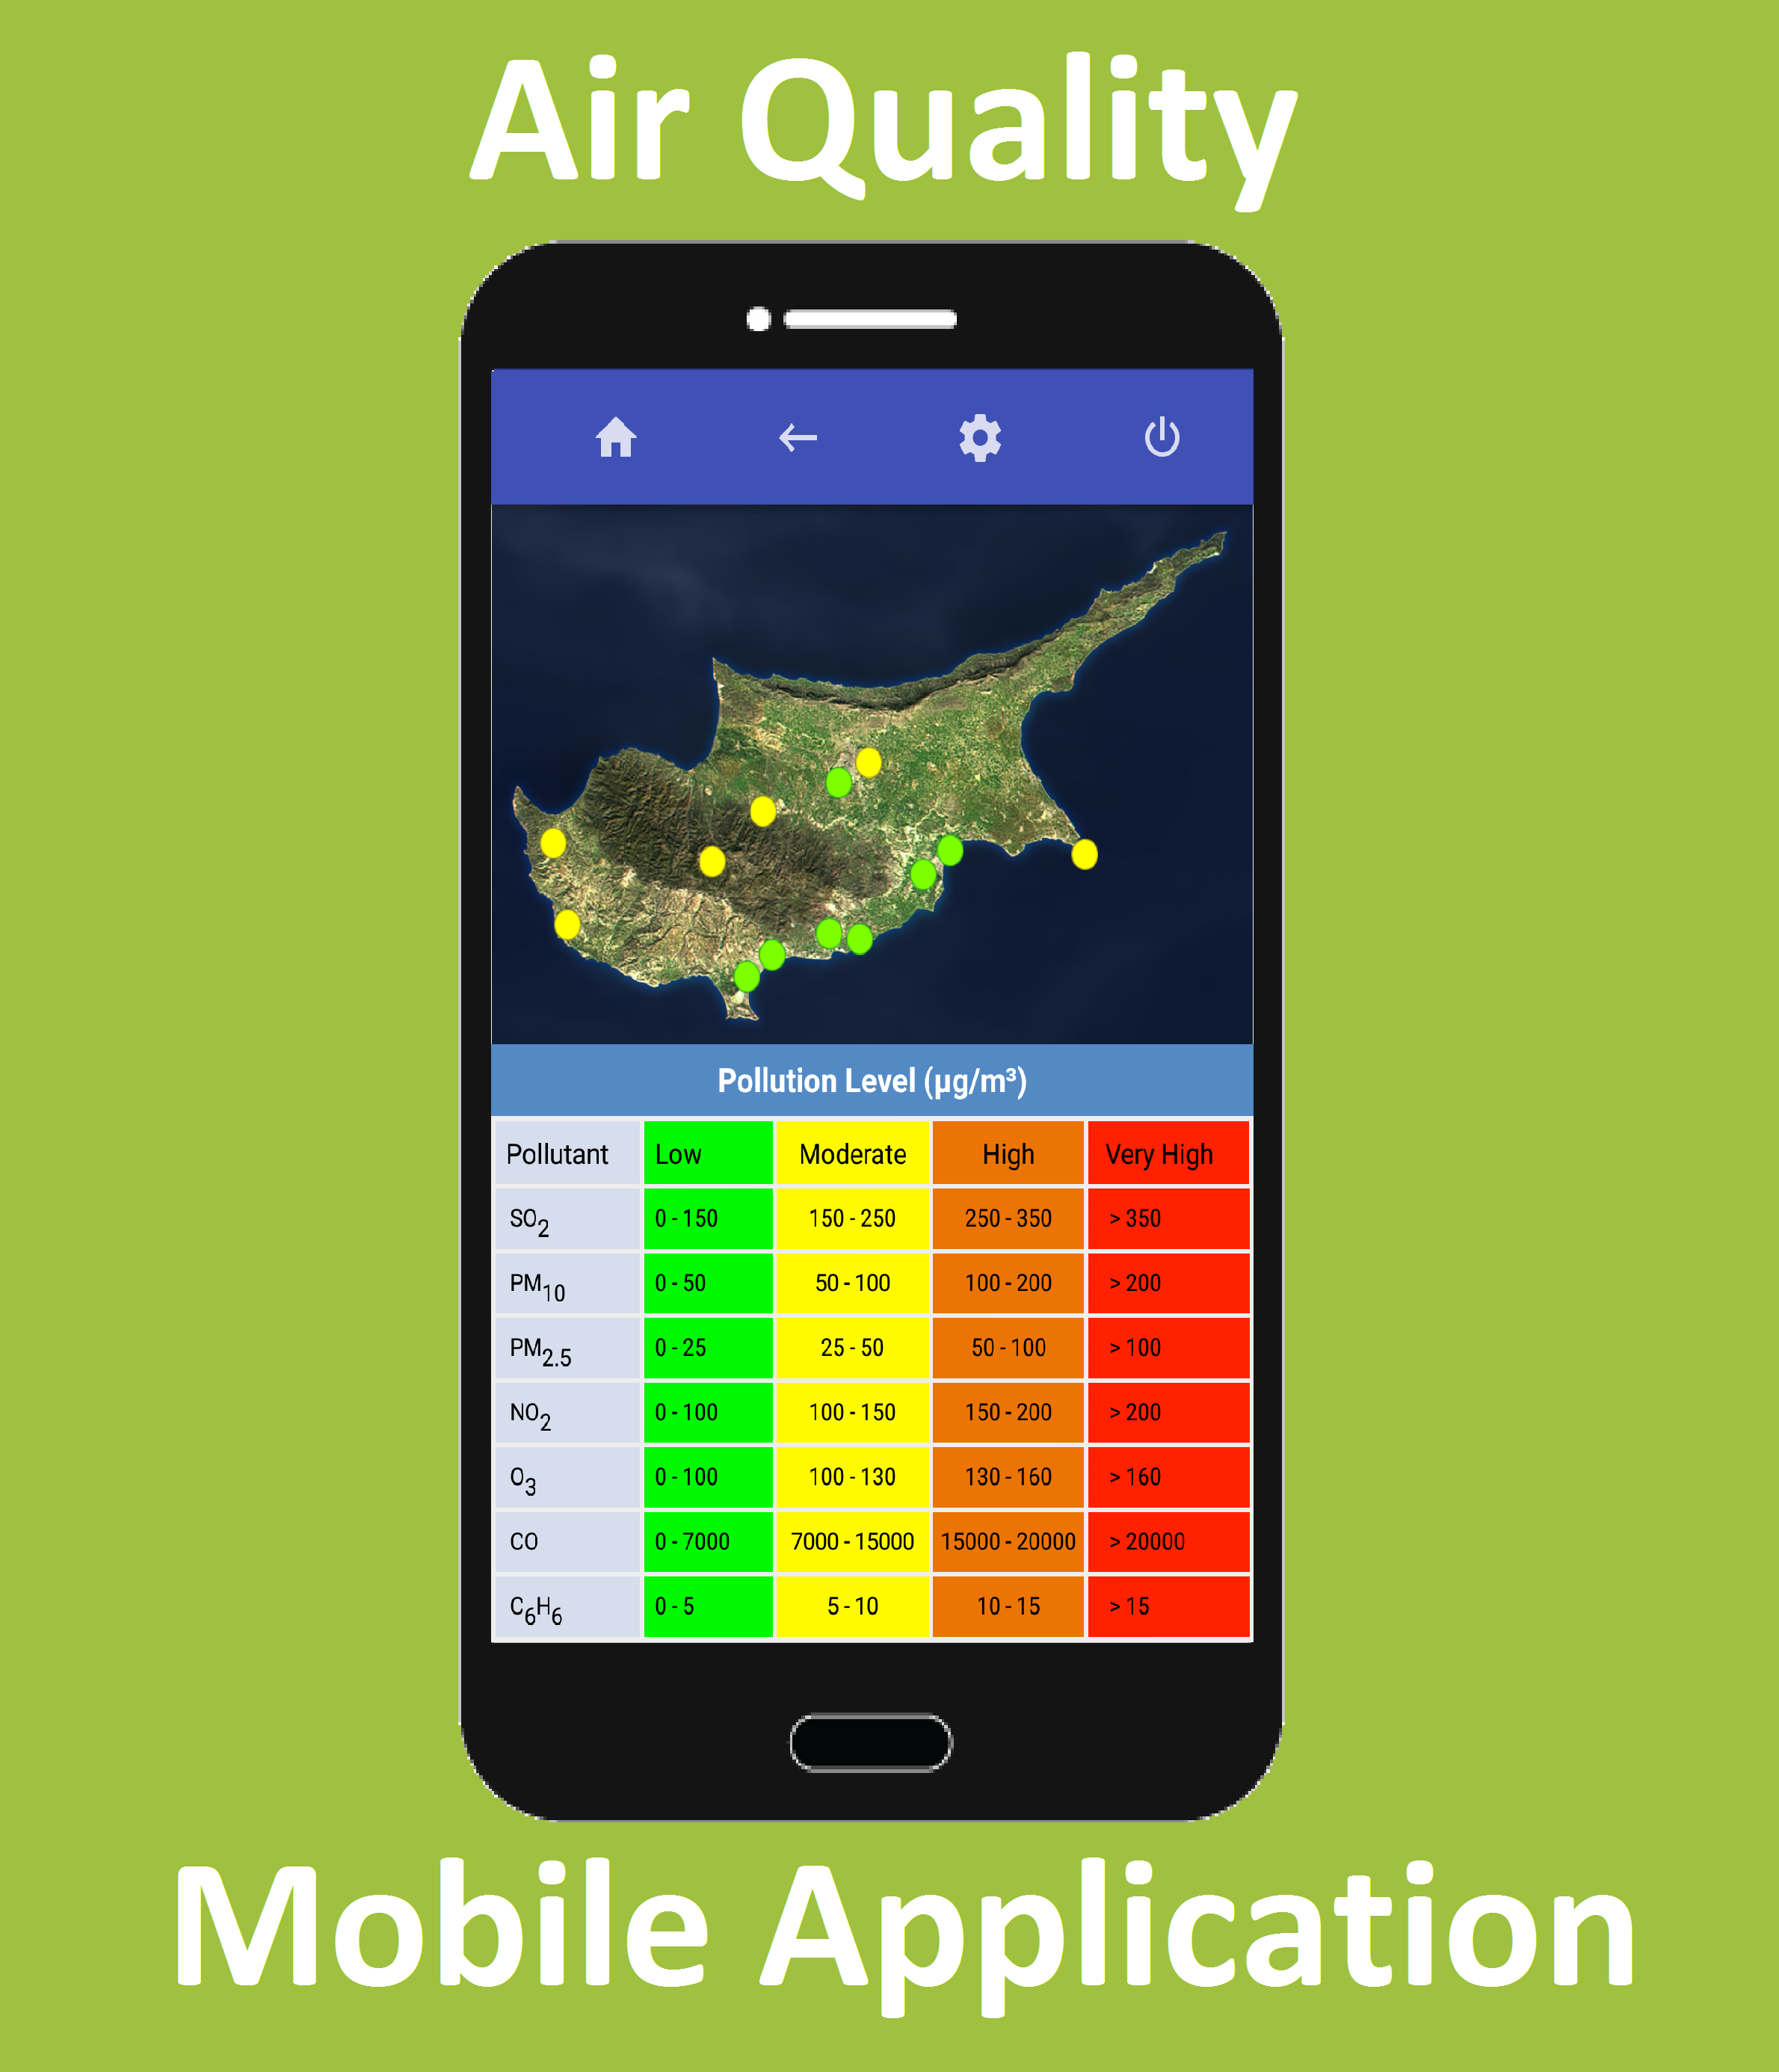 Air Quality - Mobile Application